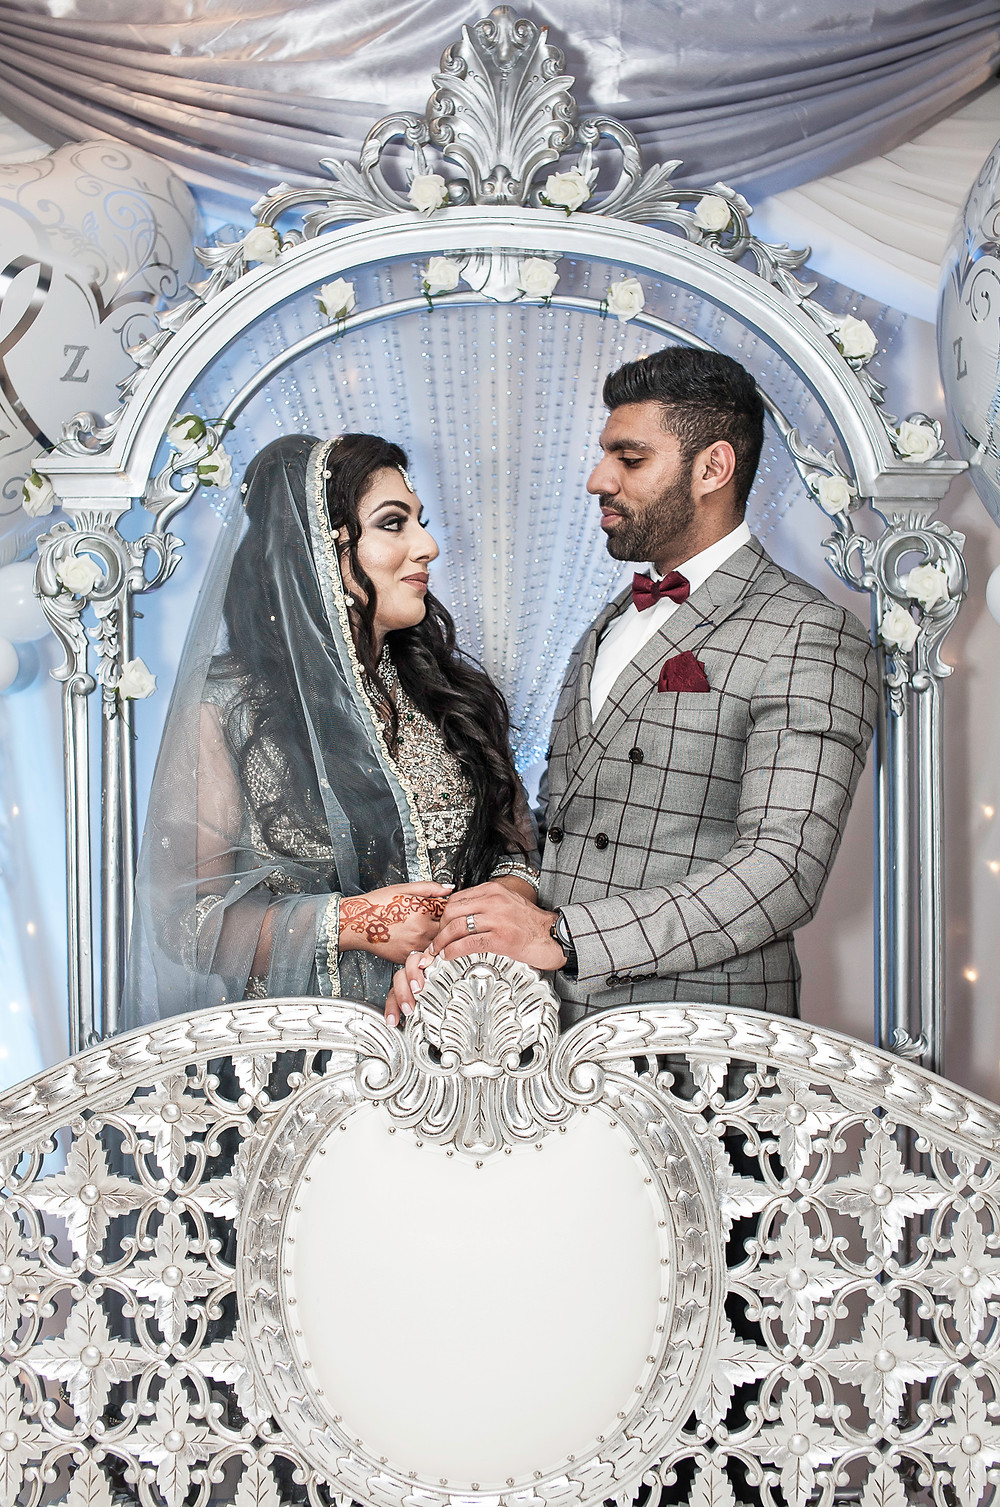 Amina & Zaman's engagement party photos - South Wales, Cardiff Asian Muslim wedding photography